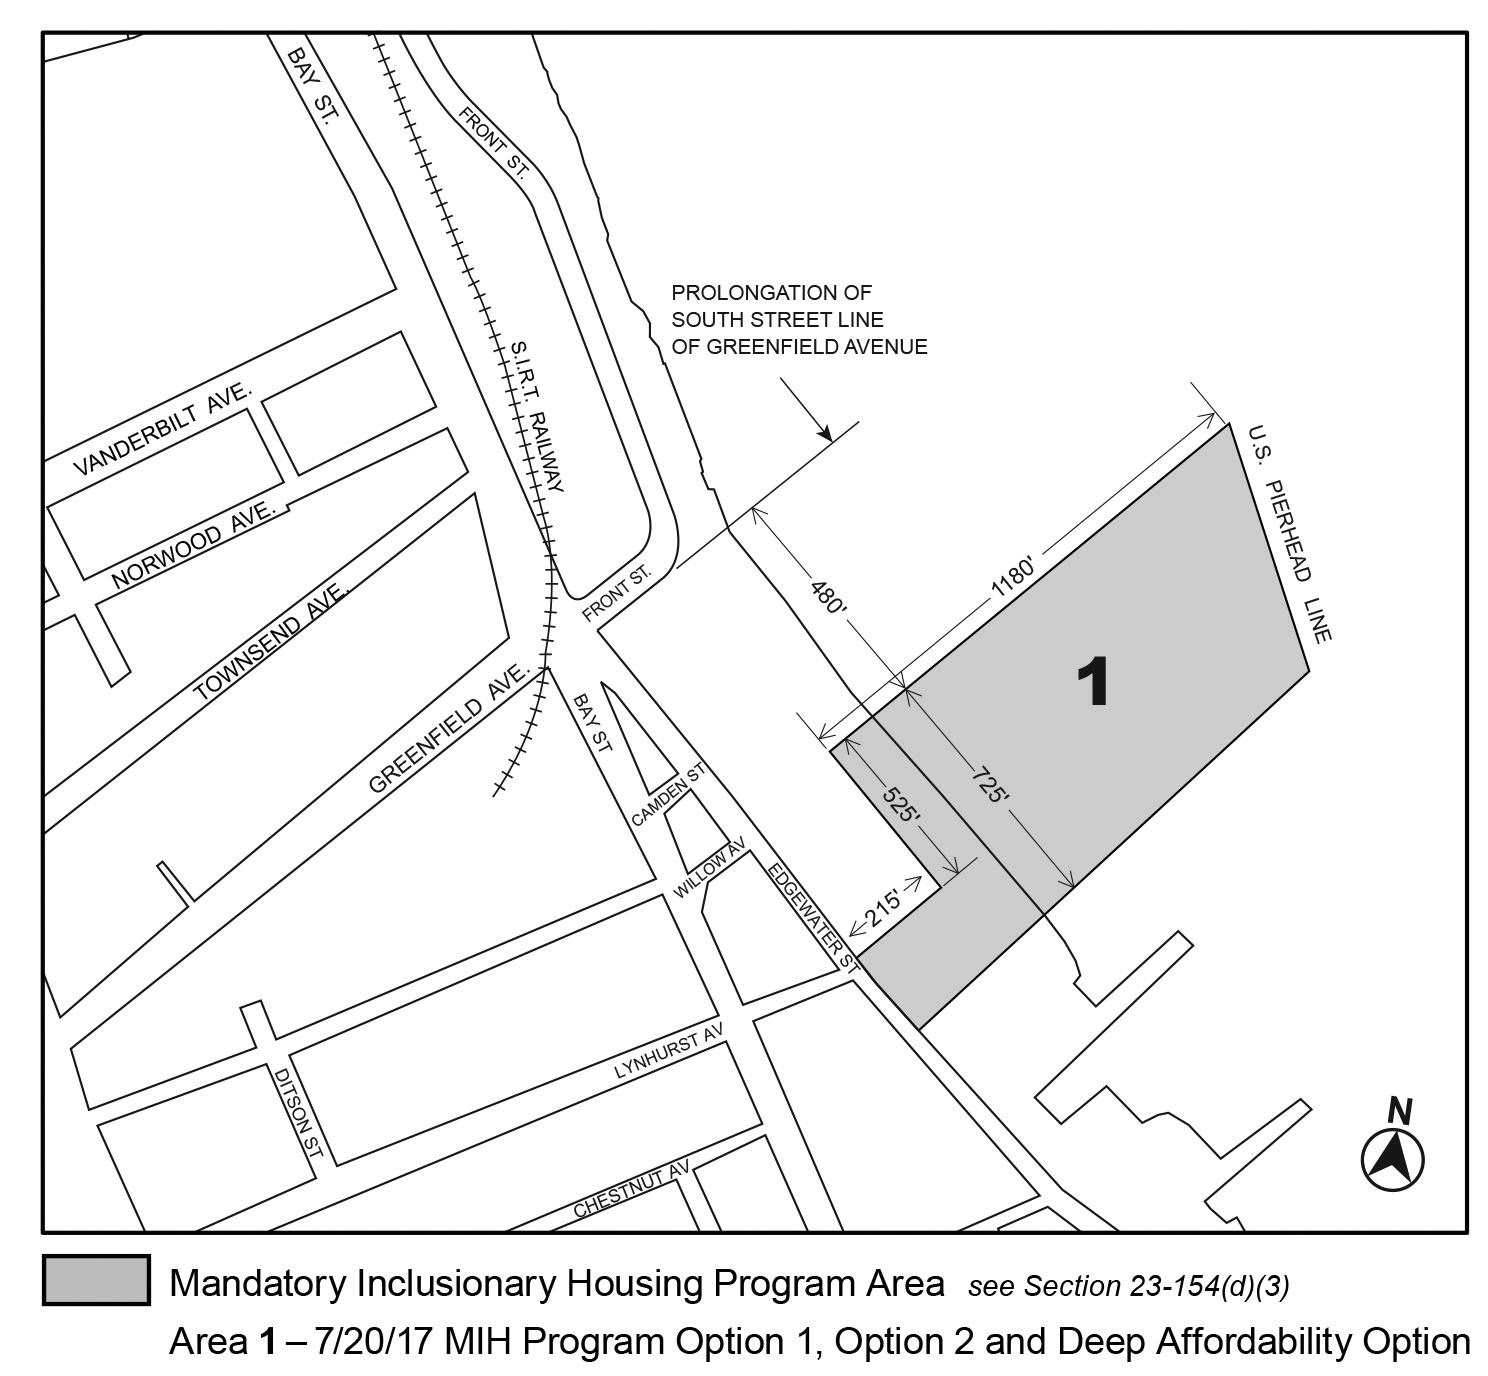 Zoning Resolutions F-Inclusionary Housing Designated Areas and Mandatory Inclusionary Housing Areas_2.128